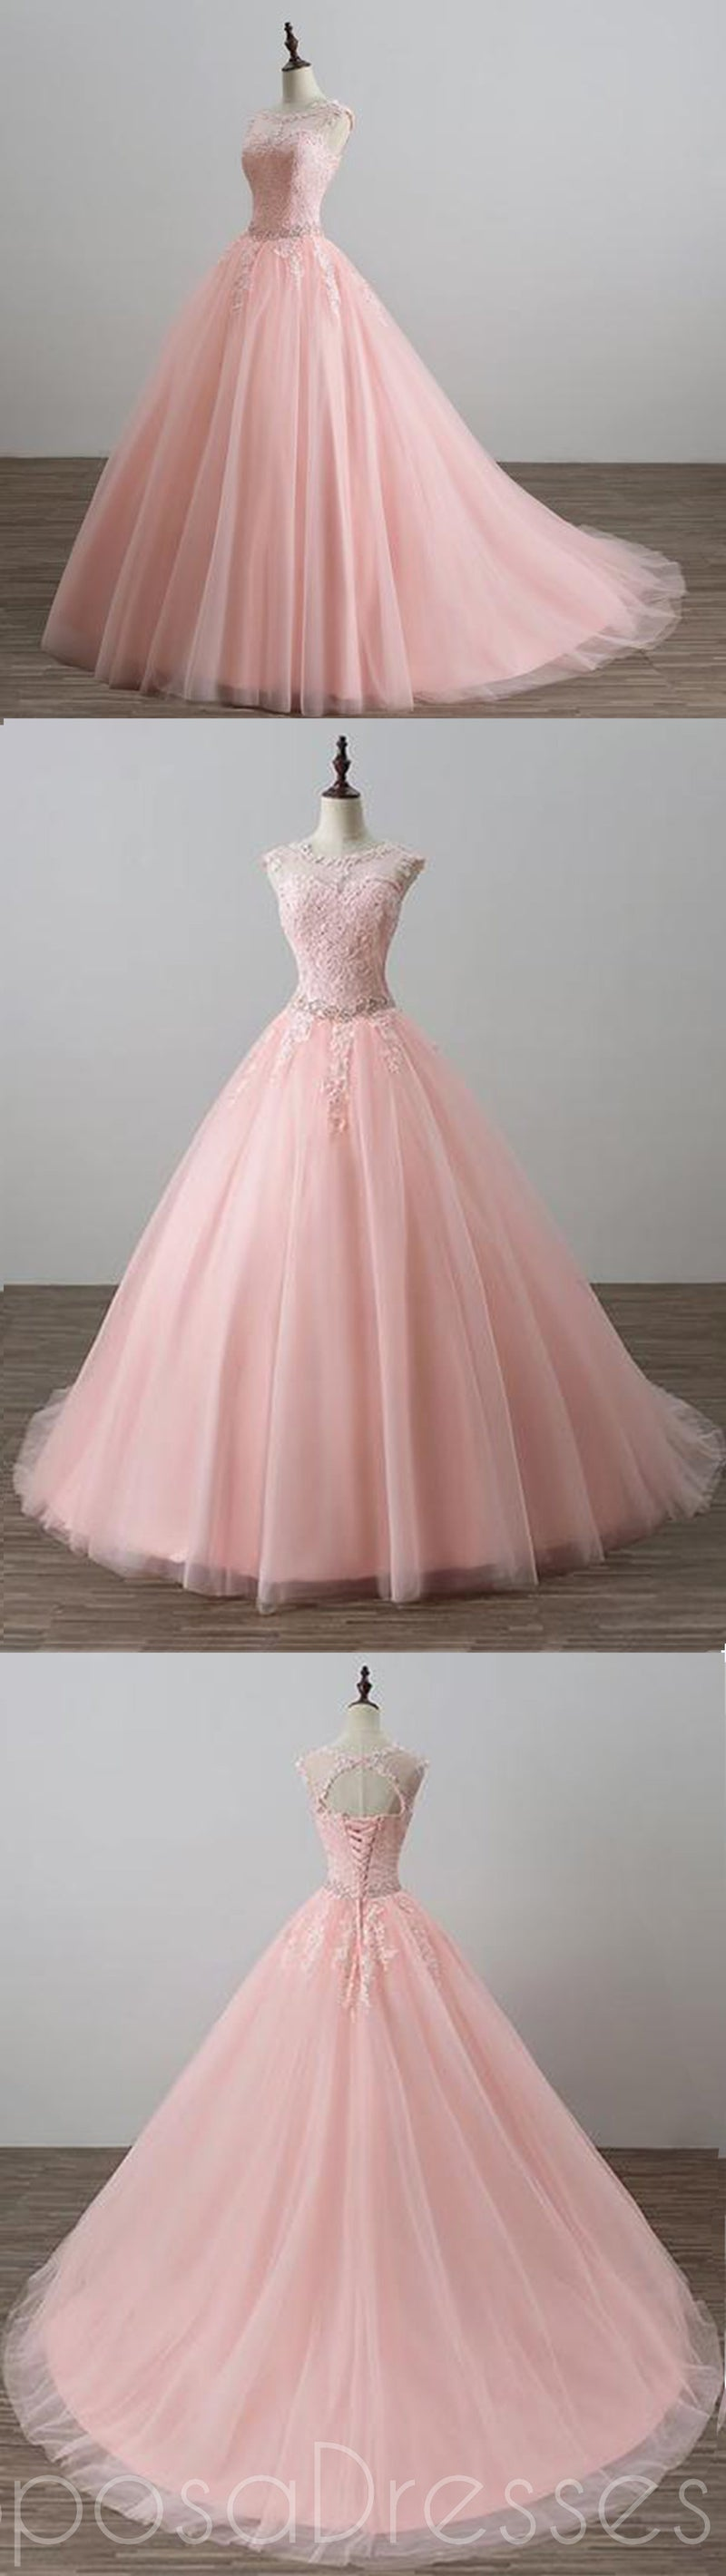 Blush Pink Open Back Lace Illusion A line Skirt Long Evening Prom ...